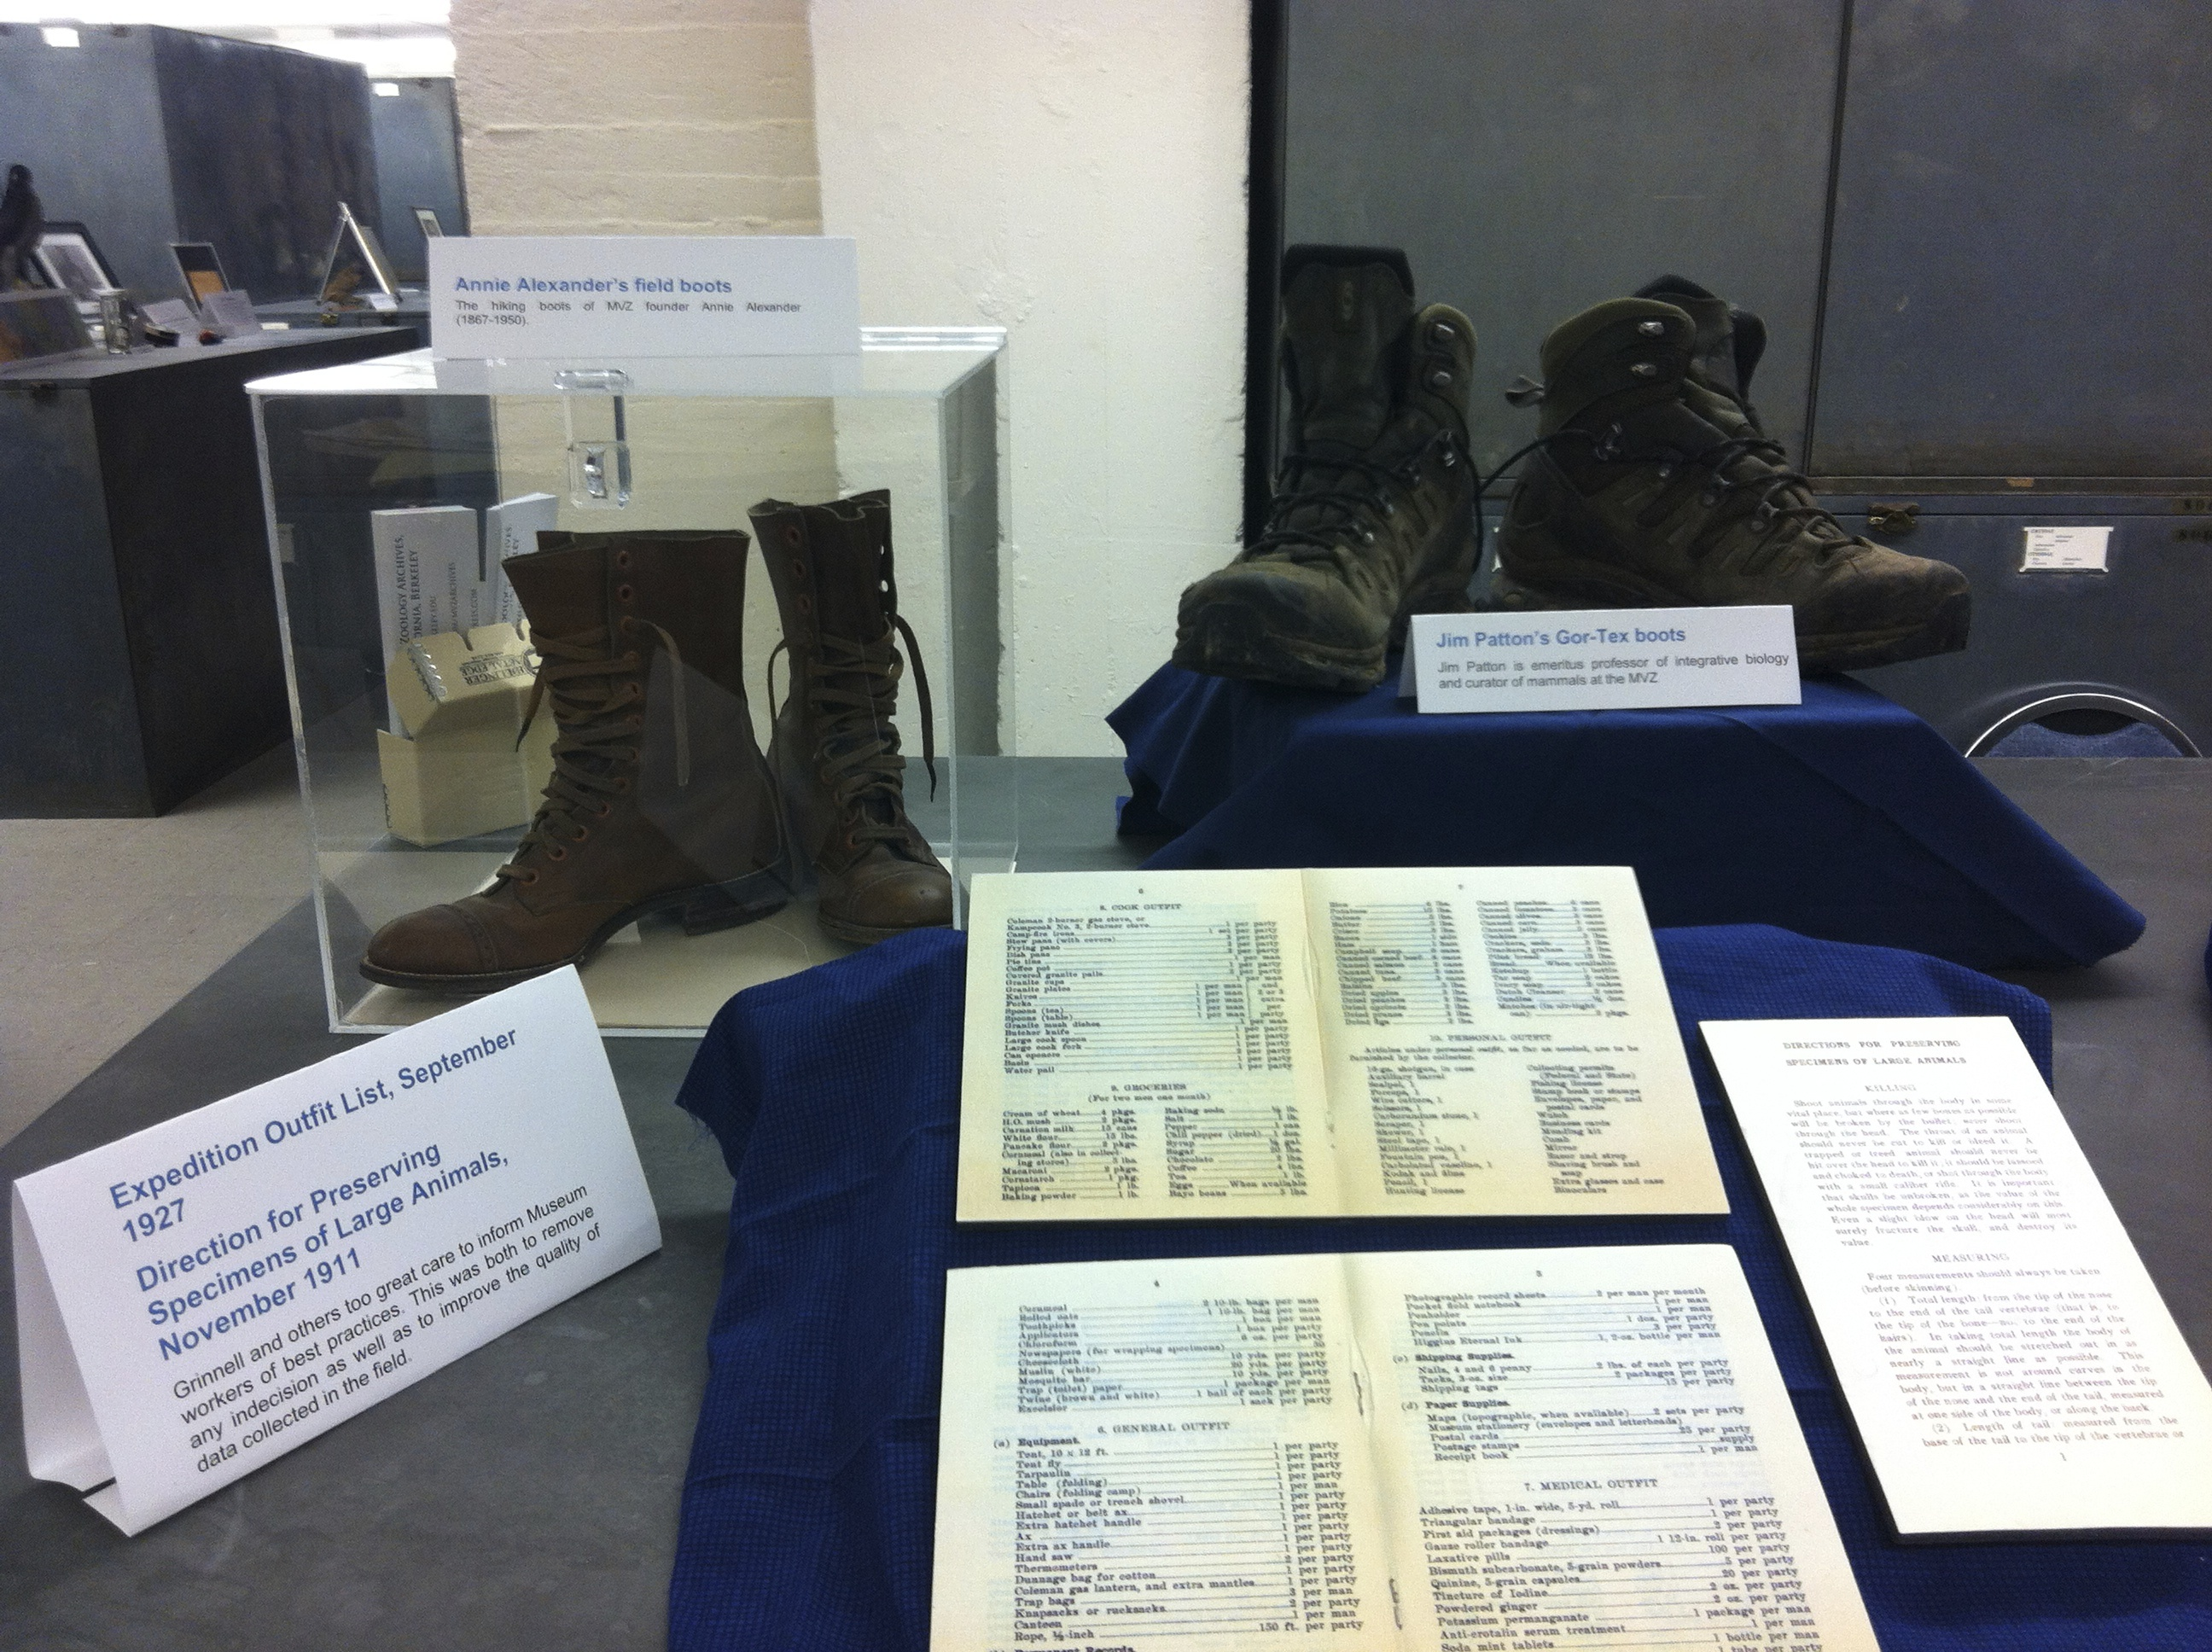 """Annie Alexander's hiking boots and the hiking boots of Jim Patton, emeritus professor of integrative biology and curator of mammals at the MVZ, sit at the back of the display. An expedition outfit list from 1927 and a page from 1911's """"Direction for Preserving Specimens of Large Mammals"""" are displayed in the foreground."""